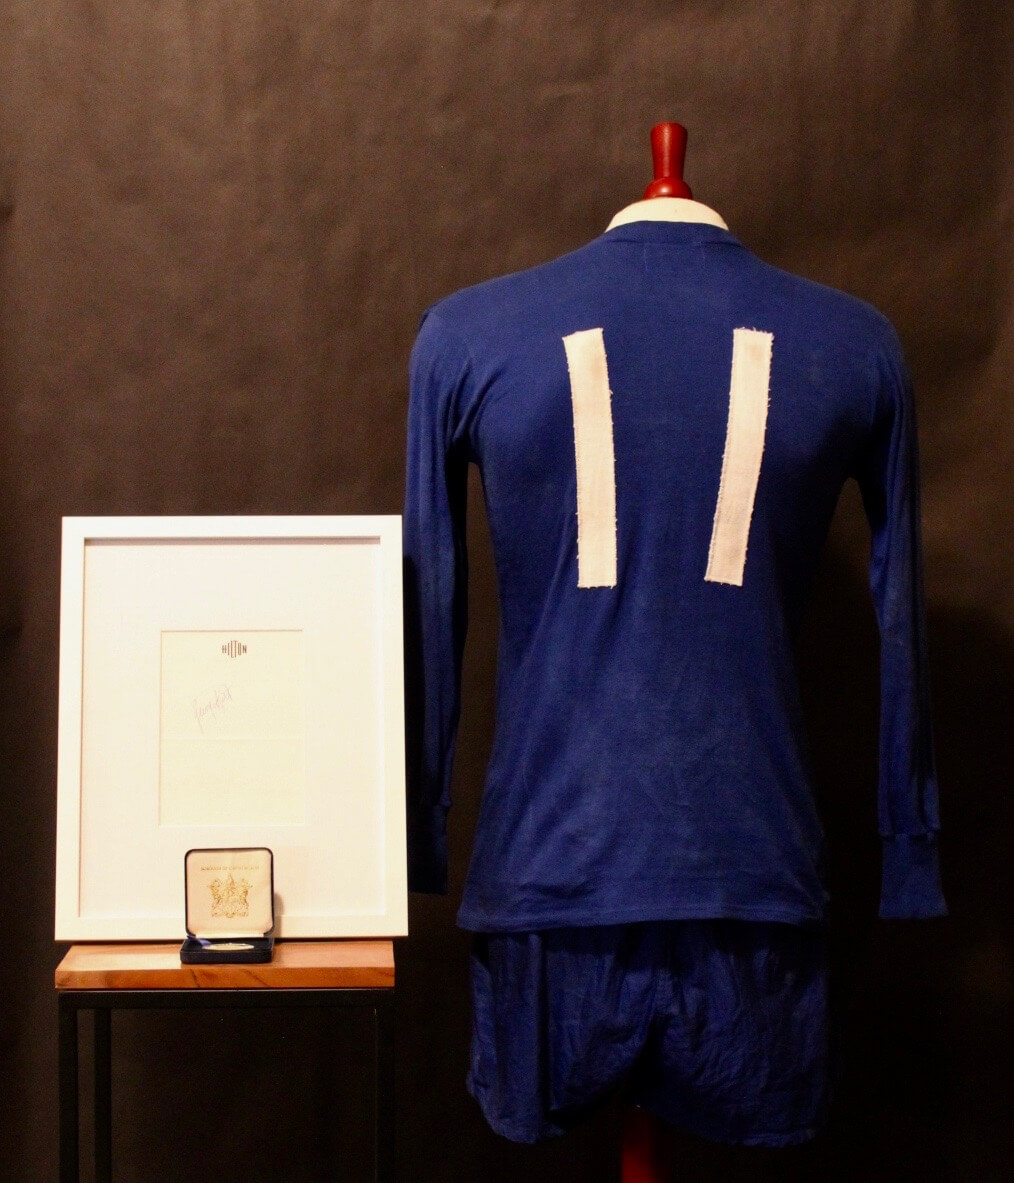 on sale 0911d 0526d A George Best Game-Used #11 Manchester United FC Uniform (Shirt & Shorts).  Circa 1960's. Includes Framed Signature & Personal Medal.